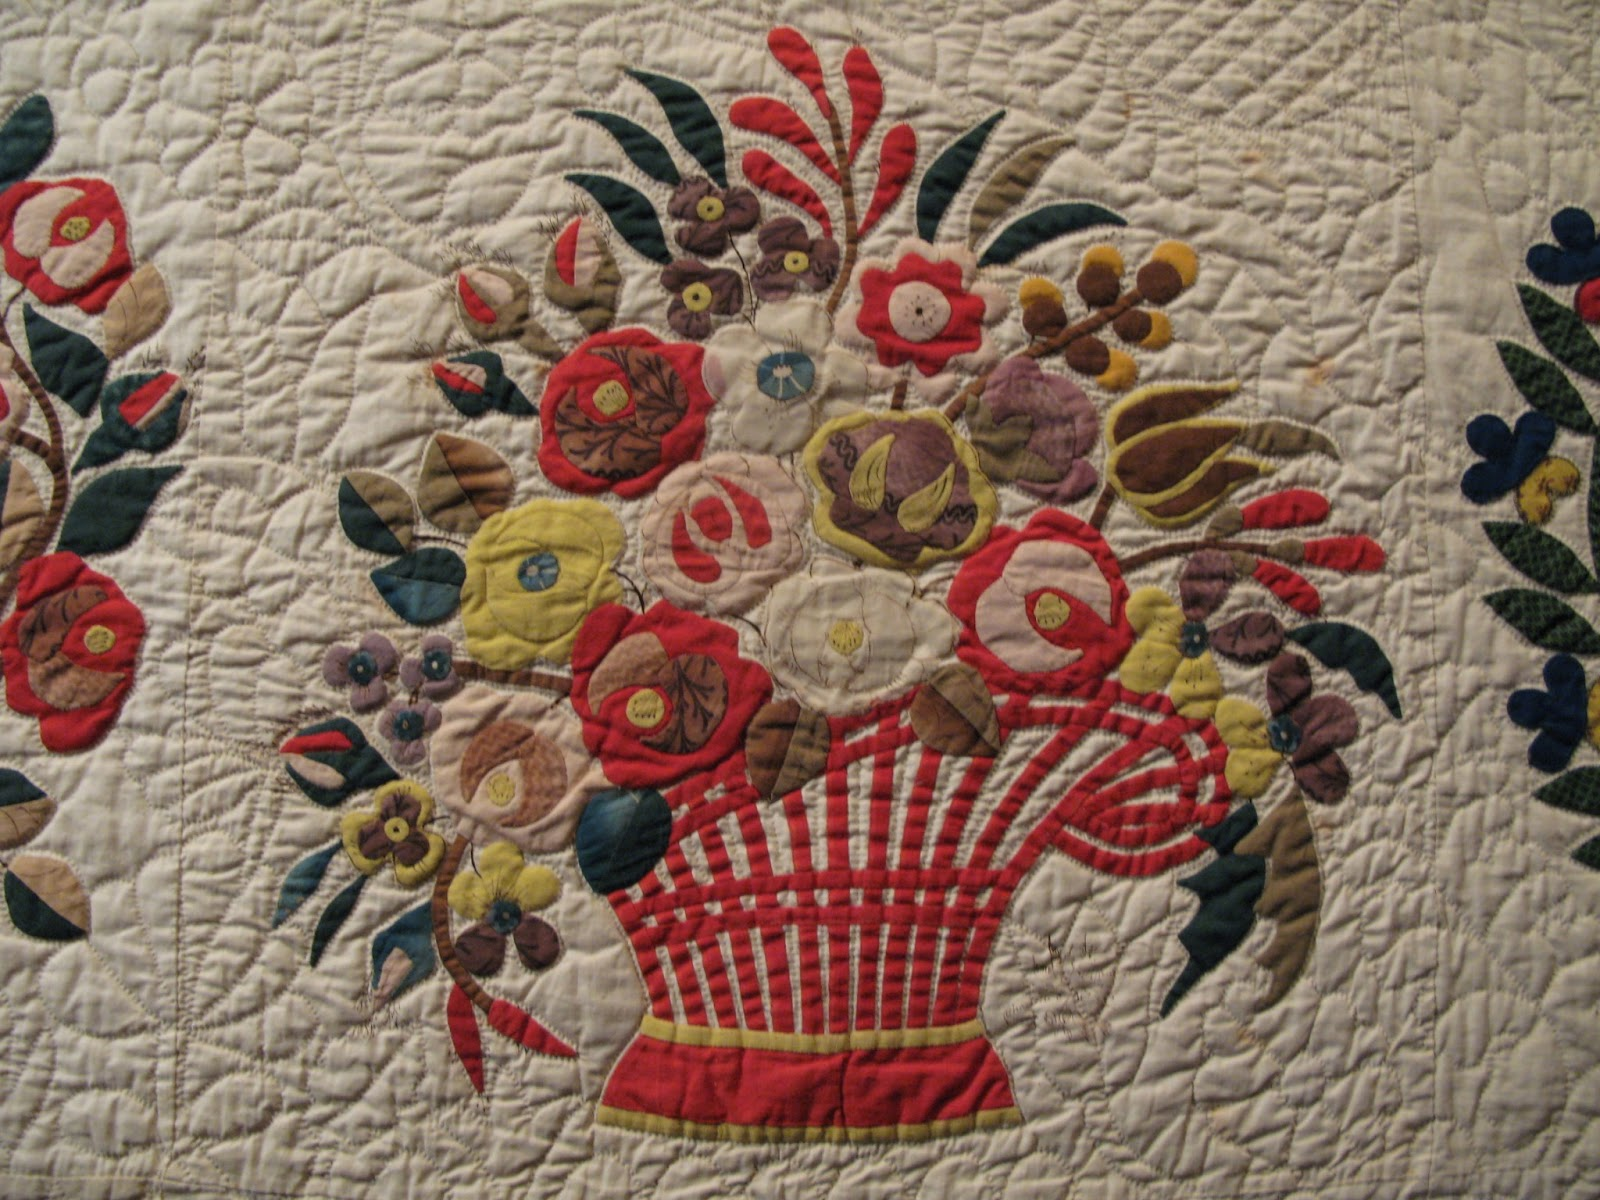 Flower Applique Quilt Patterns Interesting Inspiration Ideas